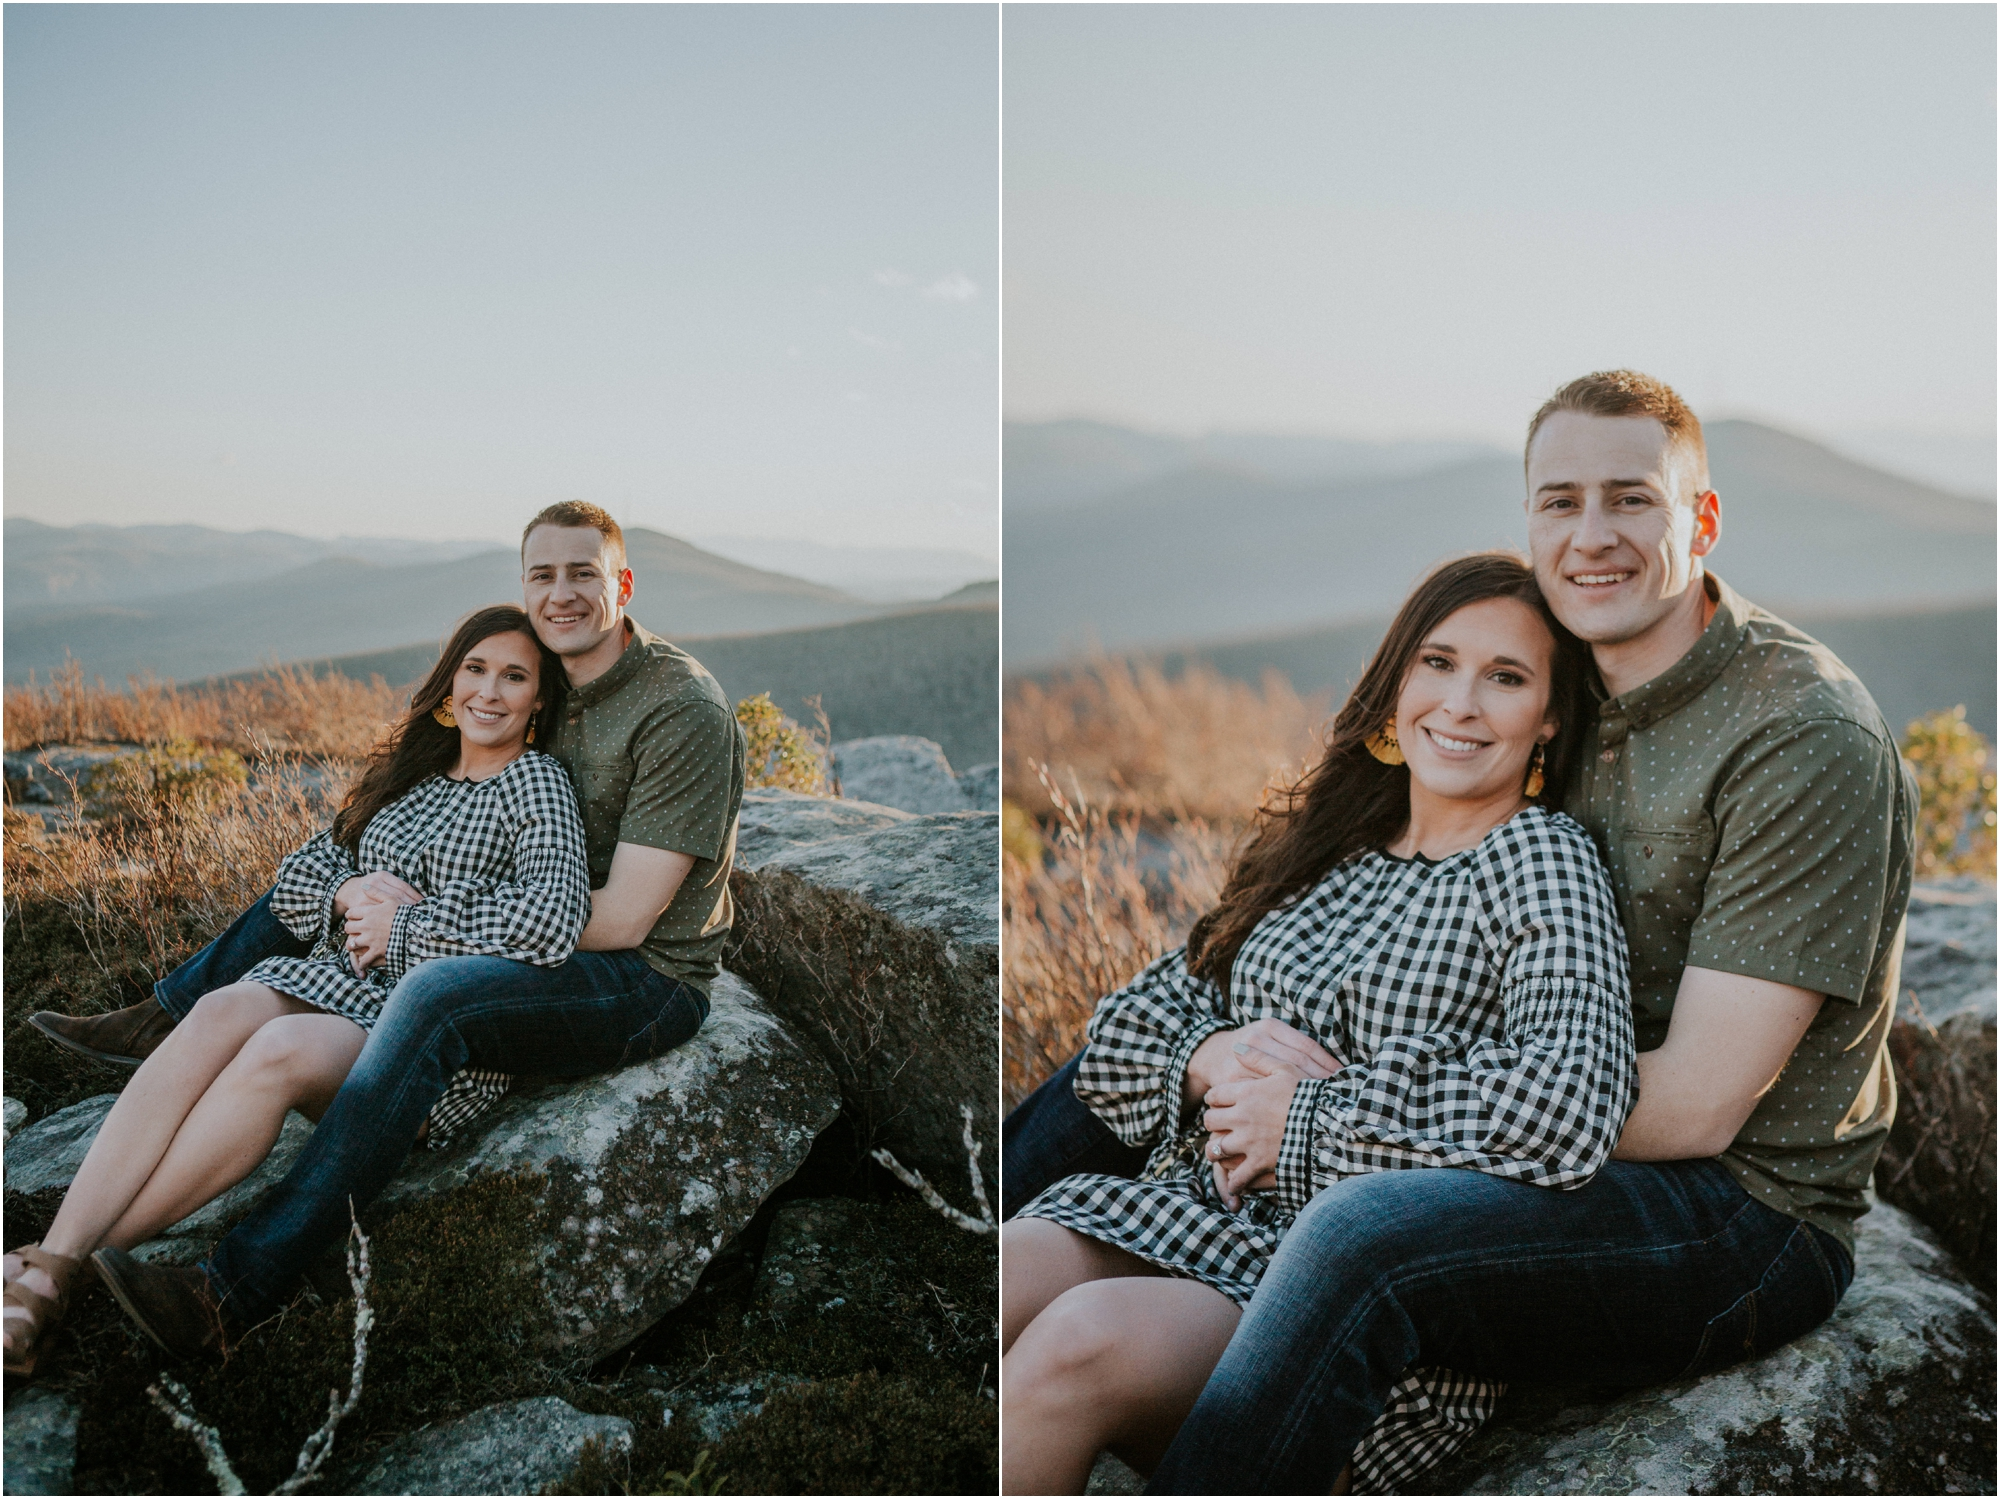 blue-ridge-parkway-engagement-session-north-carolina-boone-blowing-rock-northeast-tennessee-katy-sergent-photography_0014.jpg